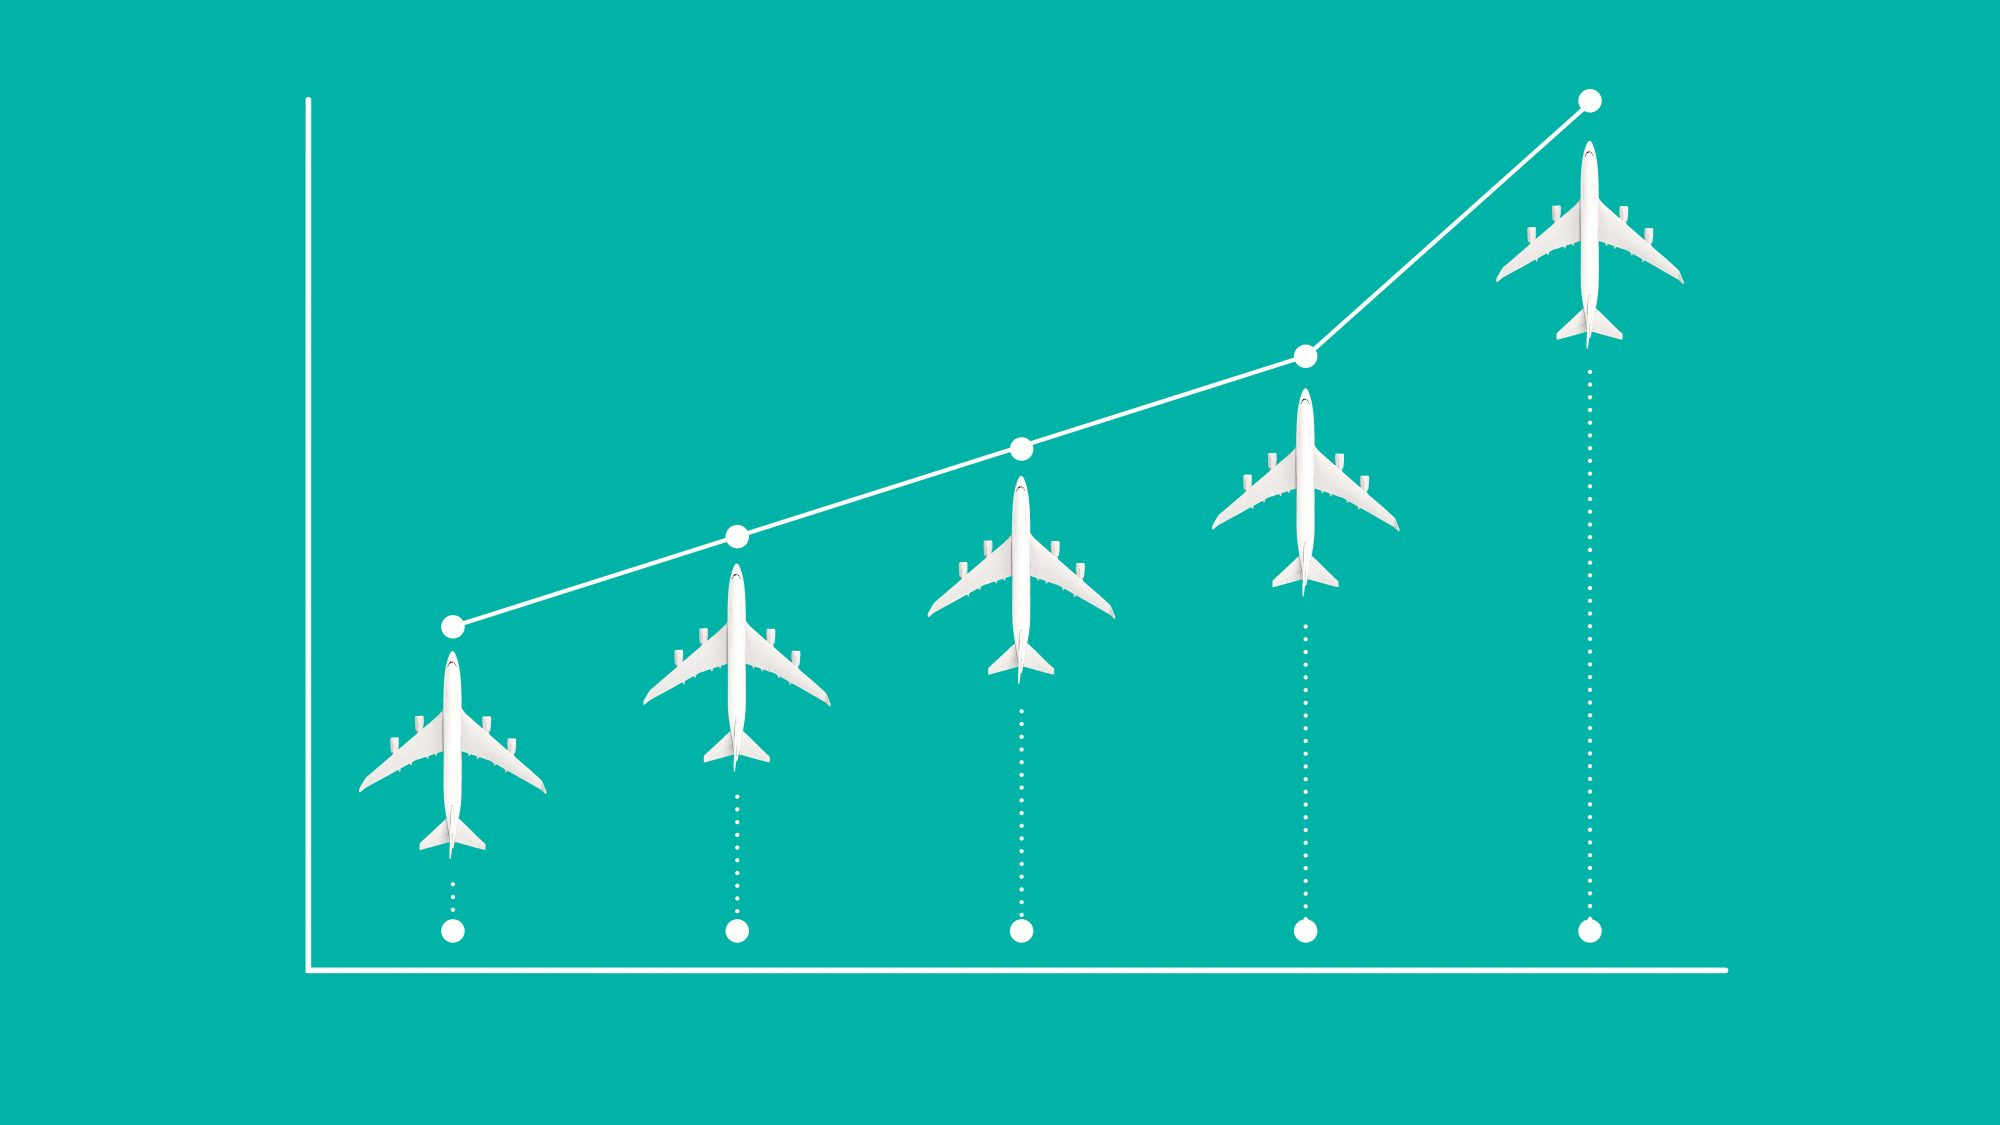 The Best and Worst Airlines in U.S. : bar graph with airplanes